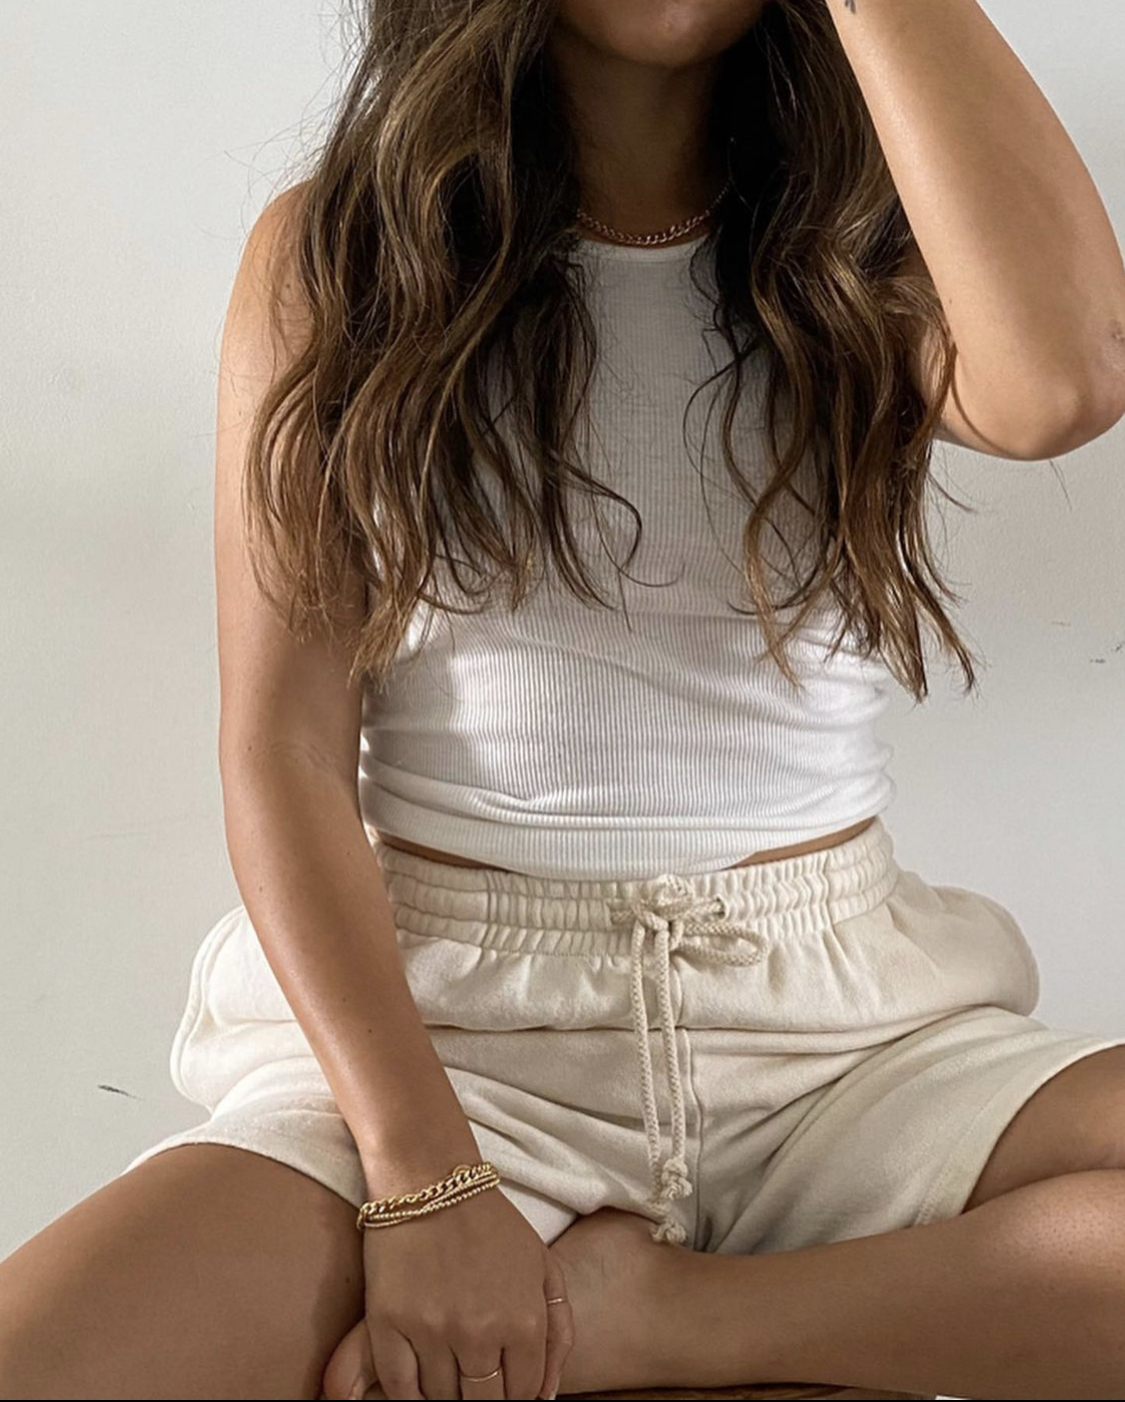 Comfy with boy shorts